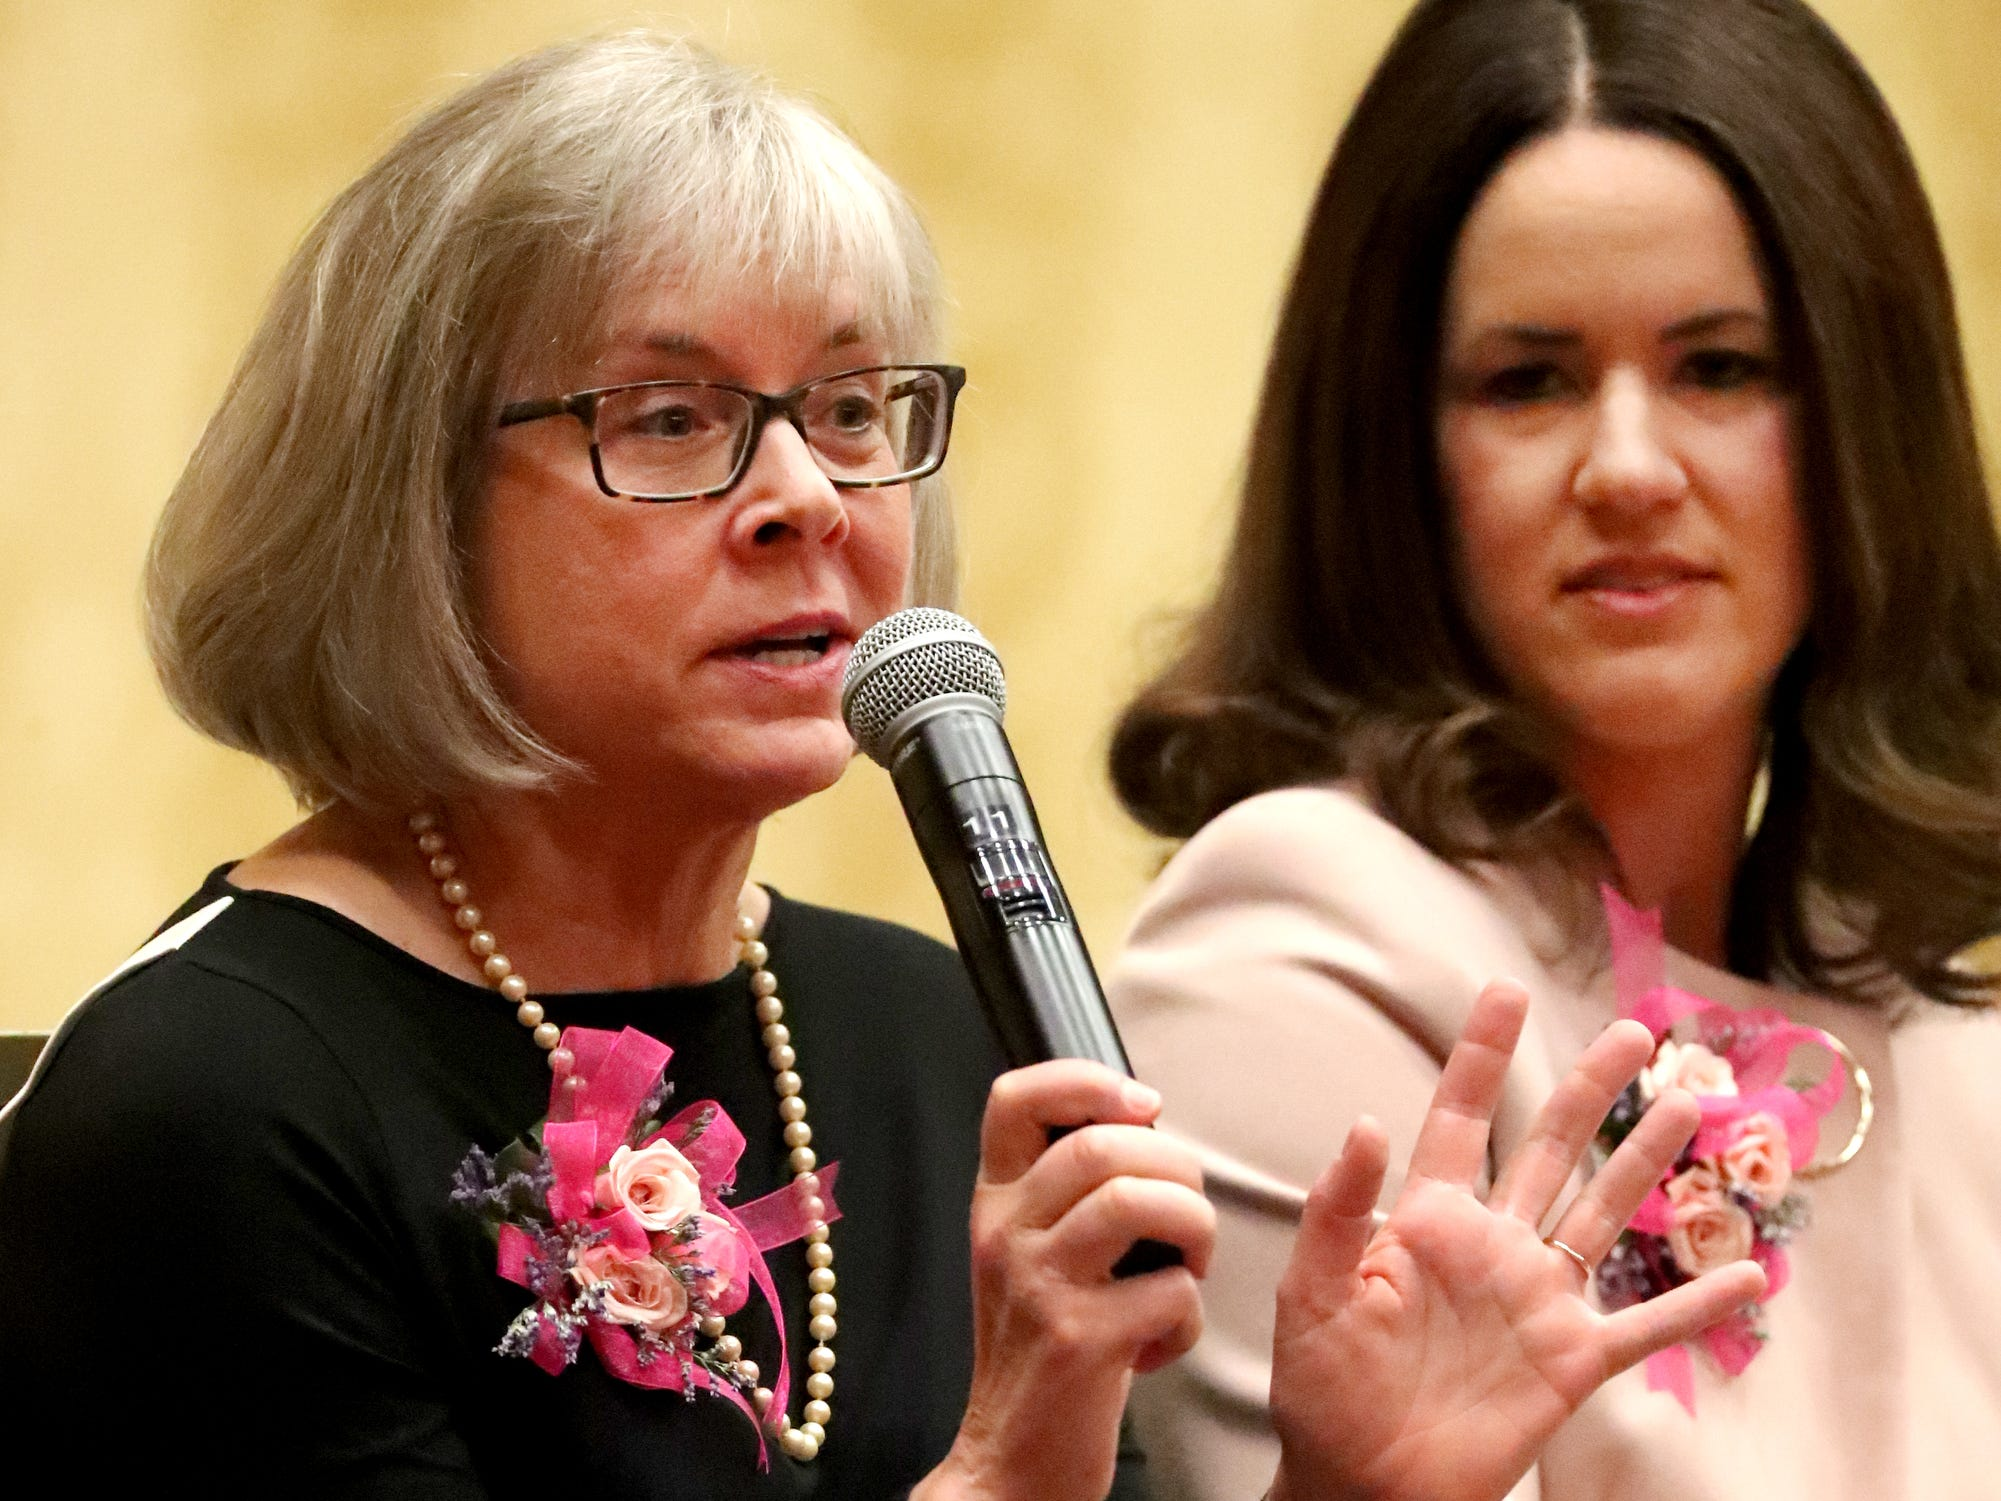 Honoree Debra Sells, Vice President for Student Affairs and Vice Provost for Enrollment Services at MTSU, answers questions during the Murfreesboro Magazine's 2019 Women in Business Luncheon on Tuesday, March 12, 2019, at the Embassy Suites Murfreesboro.